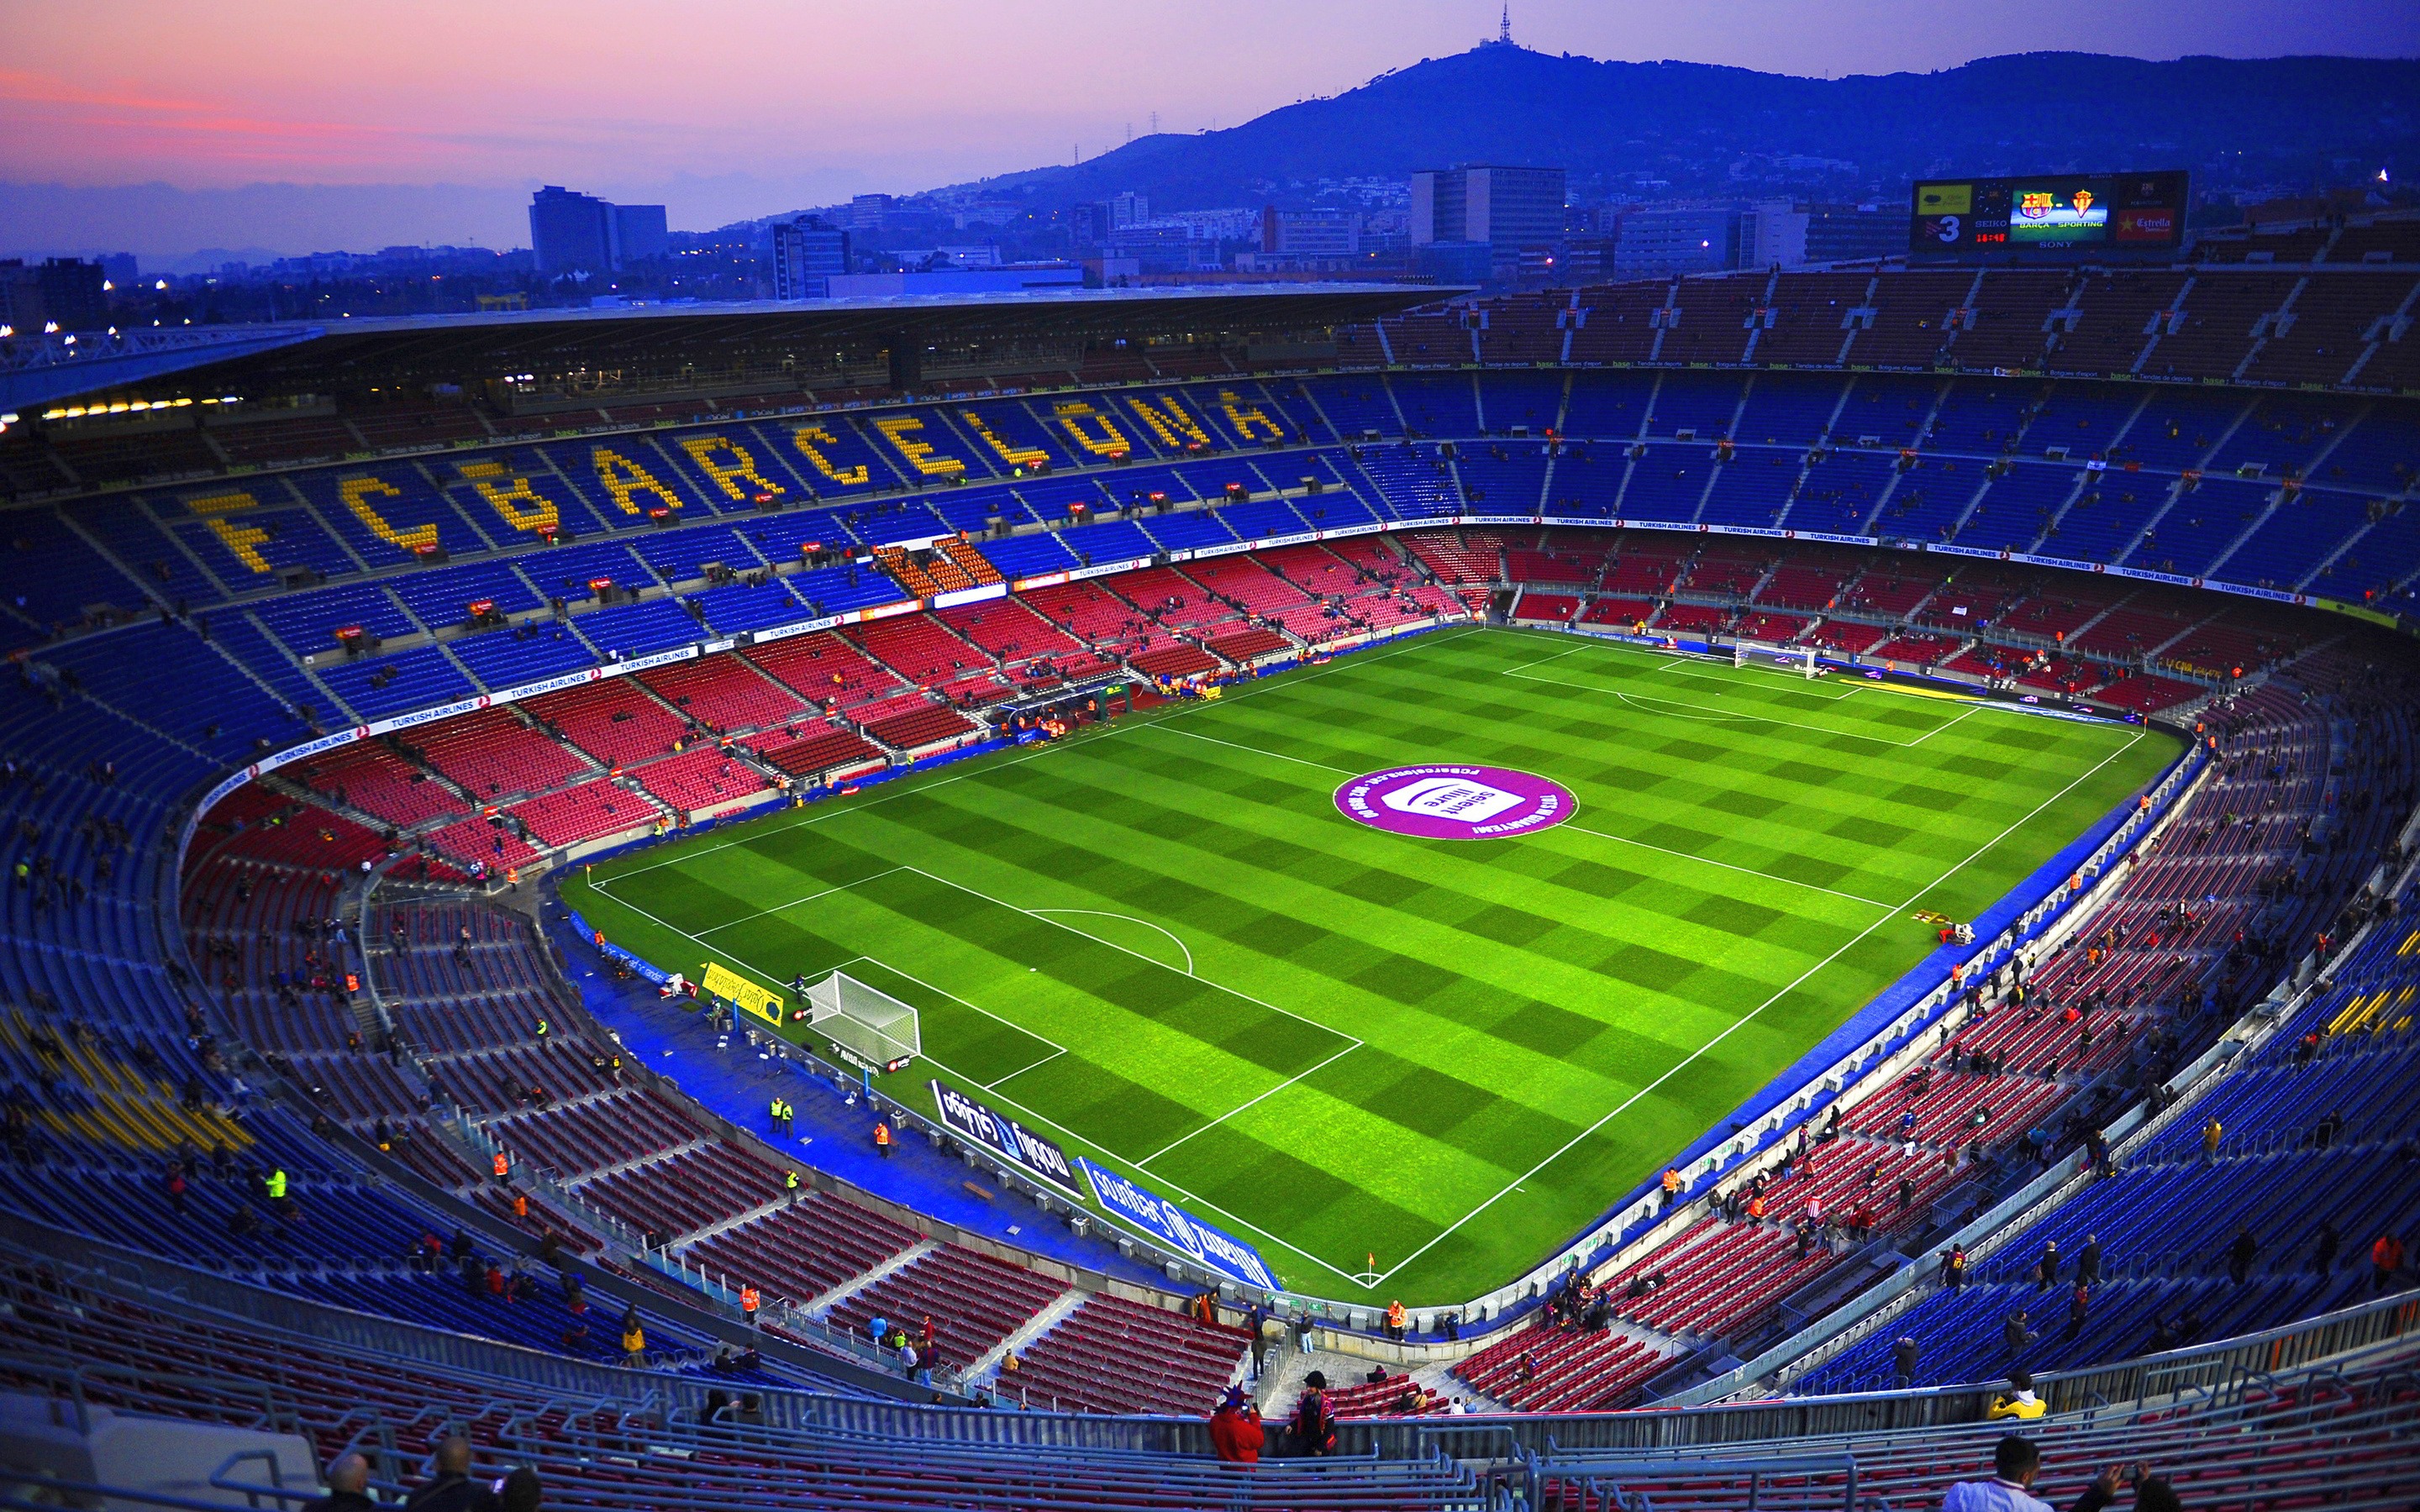 Camp nou evening